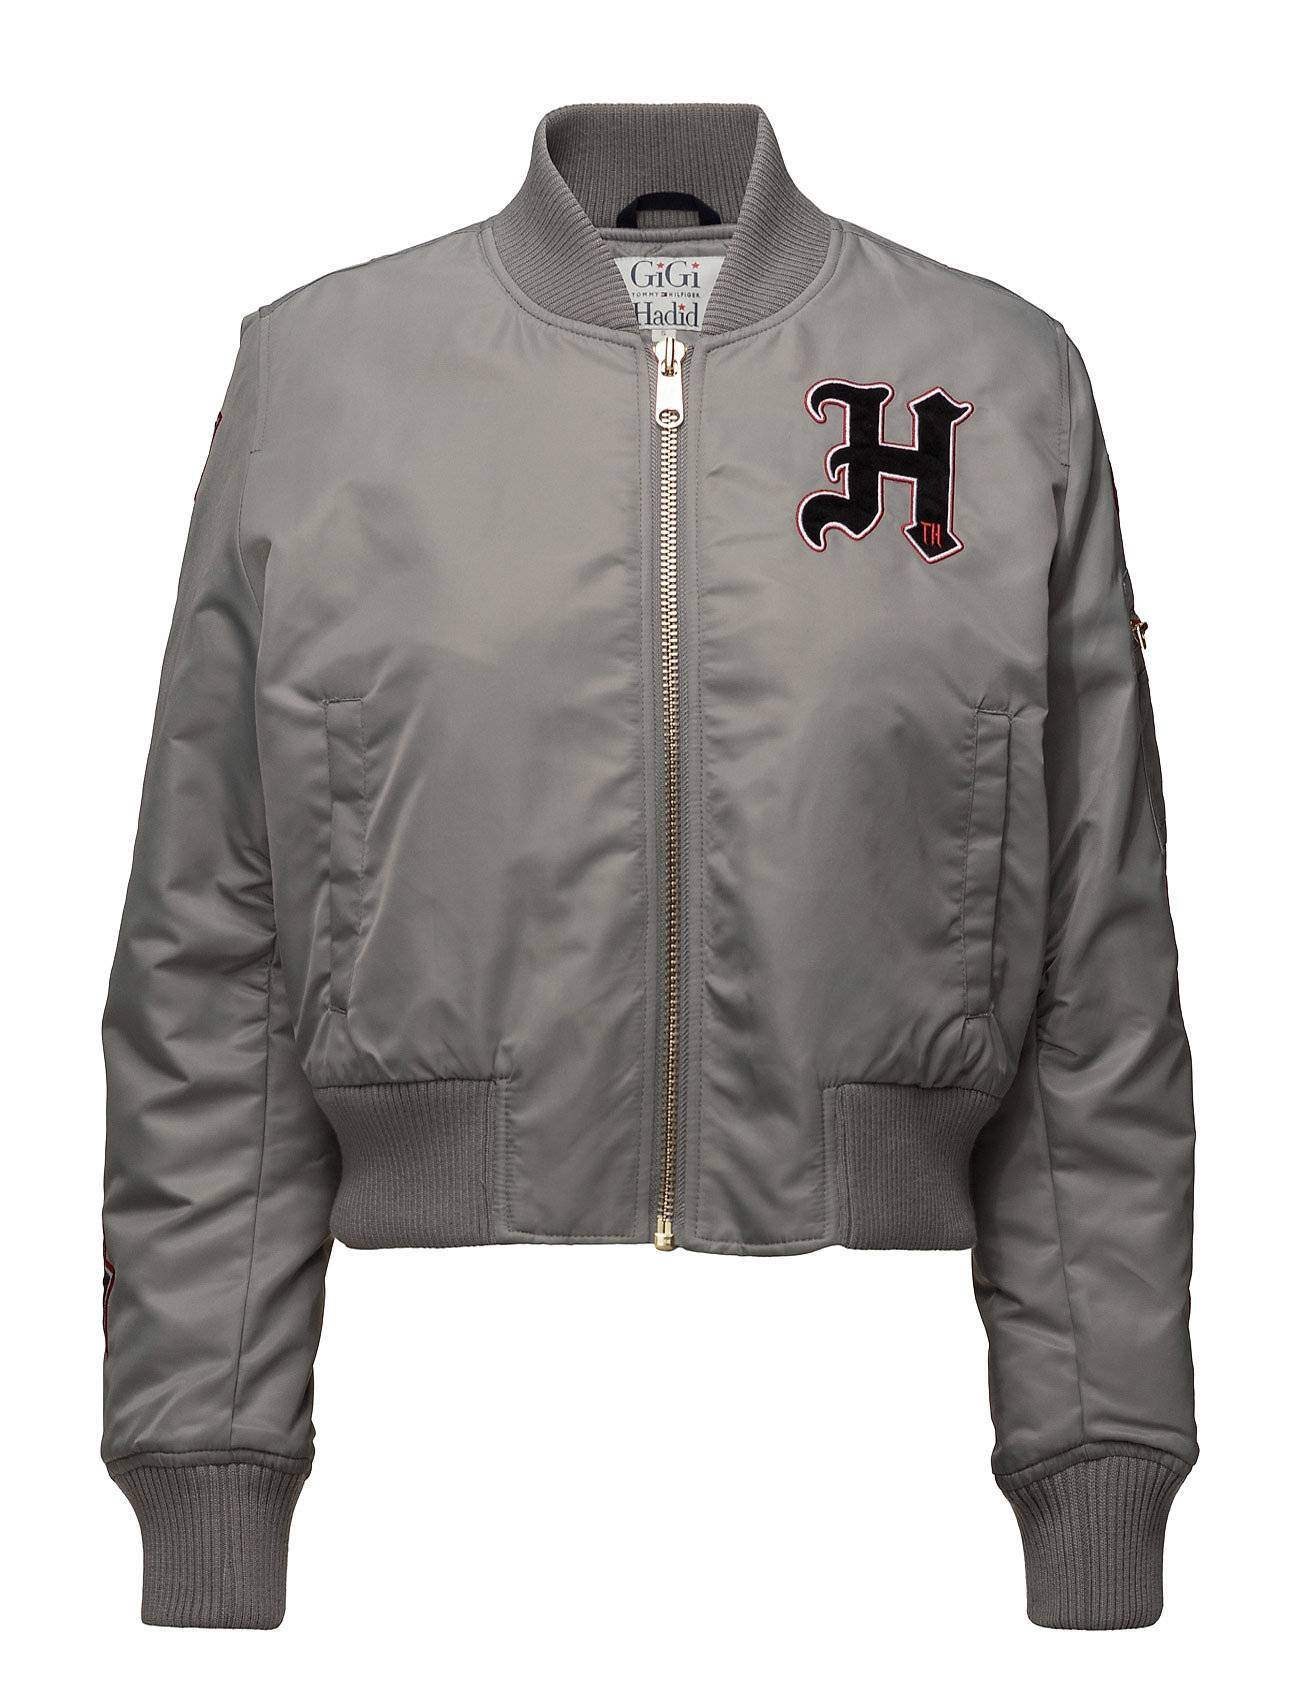 Tommy Hilfiger Gigi Hadid Thermore Bomber